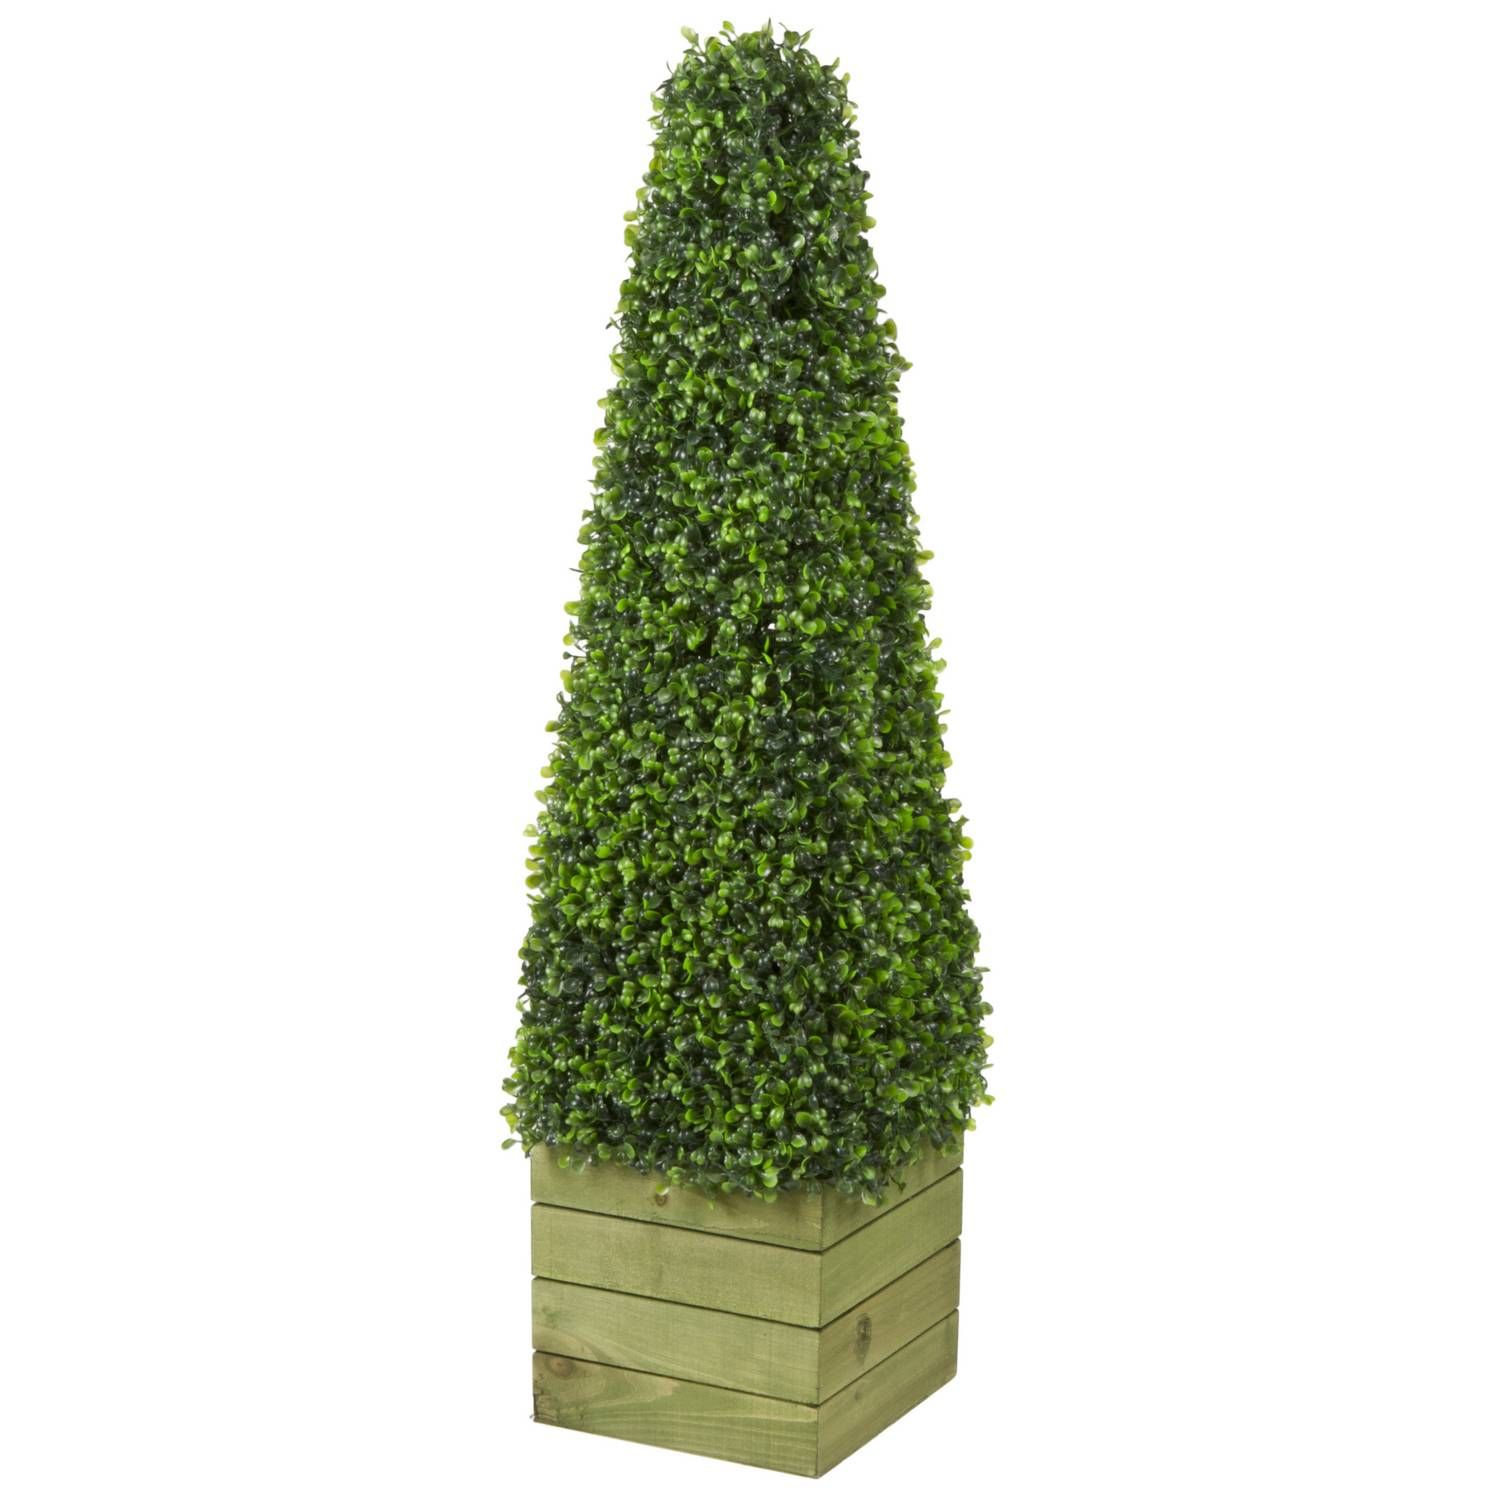 Buy Artificial Plants Buy Boxwood Pyramid On Wood Pot Artificial Plants The